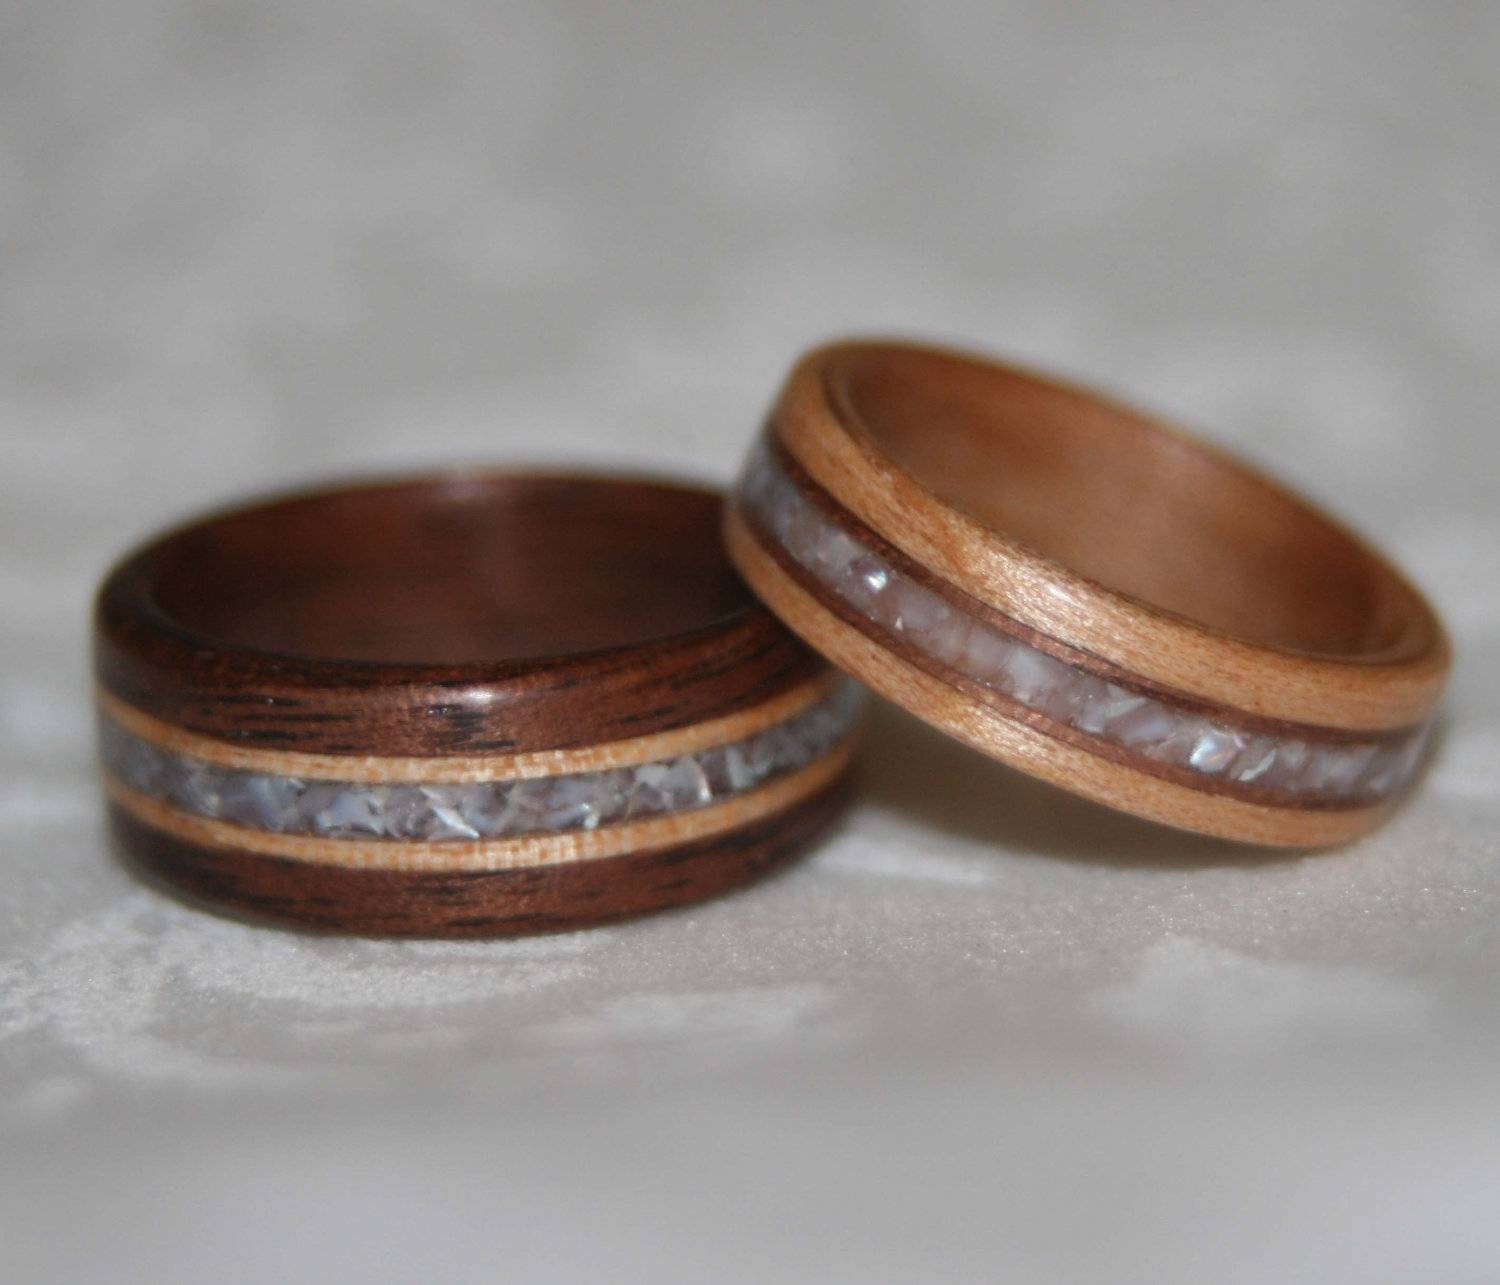 Set Of Custom Wooden Wedding Bands With Wood Accents And Stone Pertaining To Wood Grain Wedding Bands (View 10 of 15)